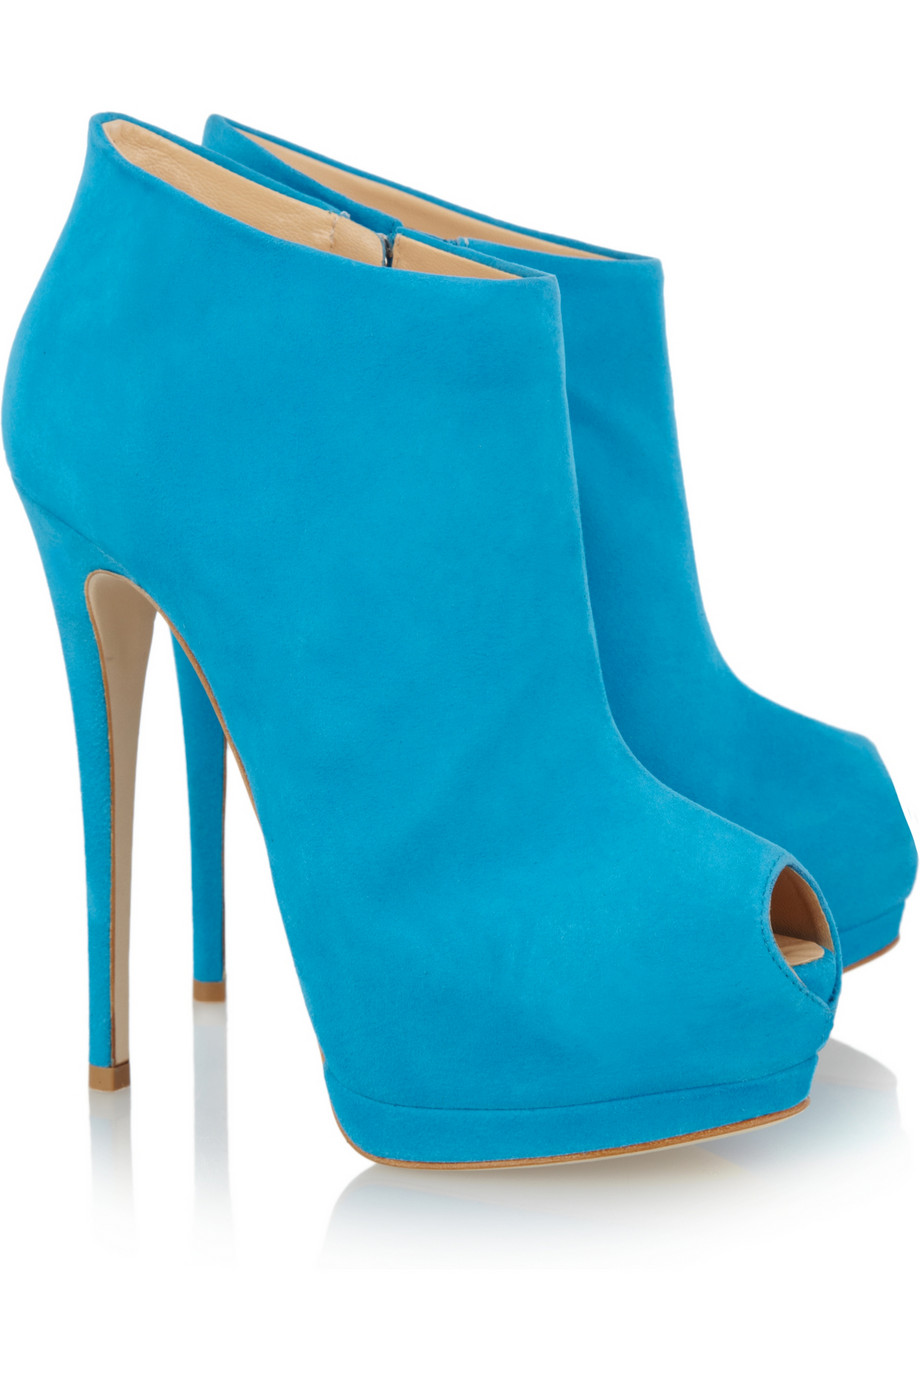 ... Bright blue suede peep toe ankle boots from Giuseppe Zanotti - plus  Sharon now in GREEN